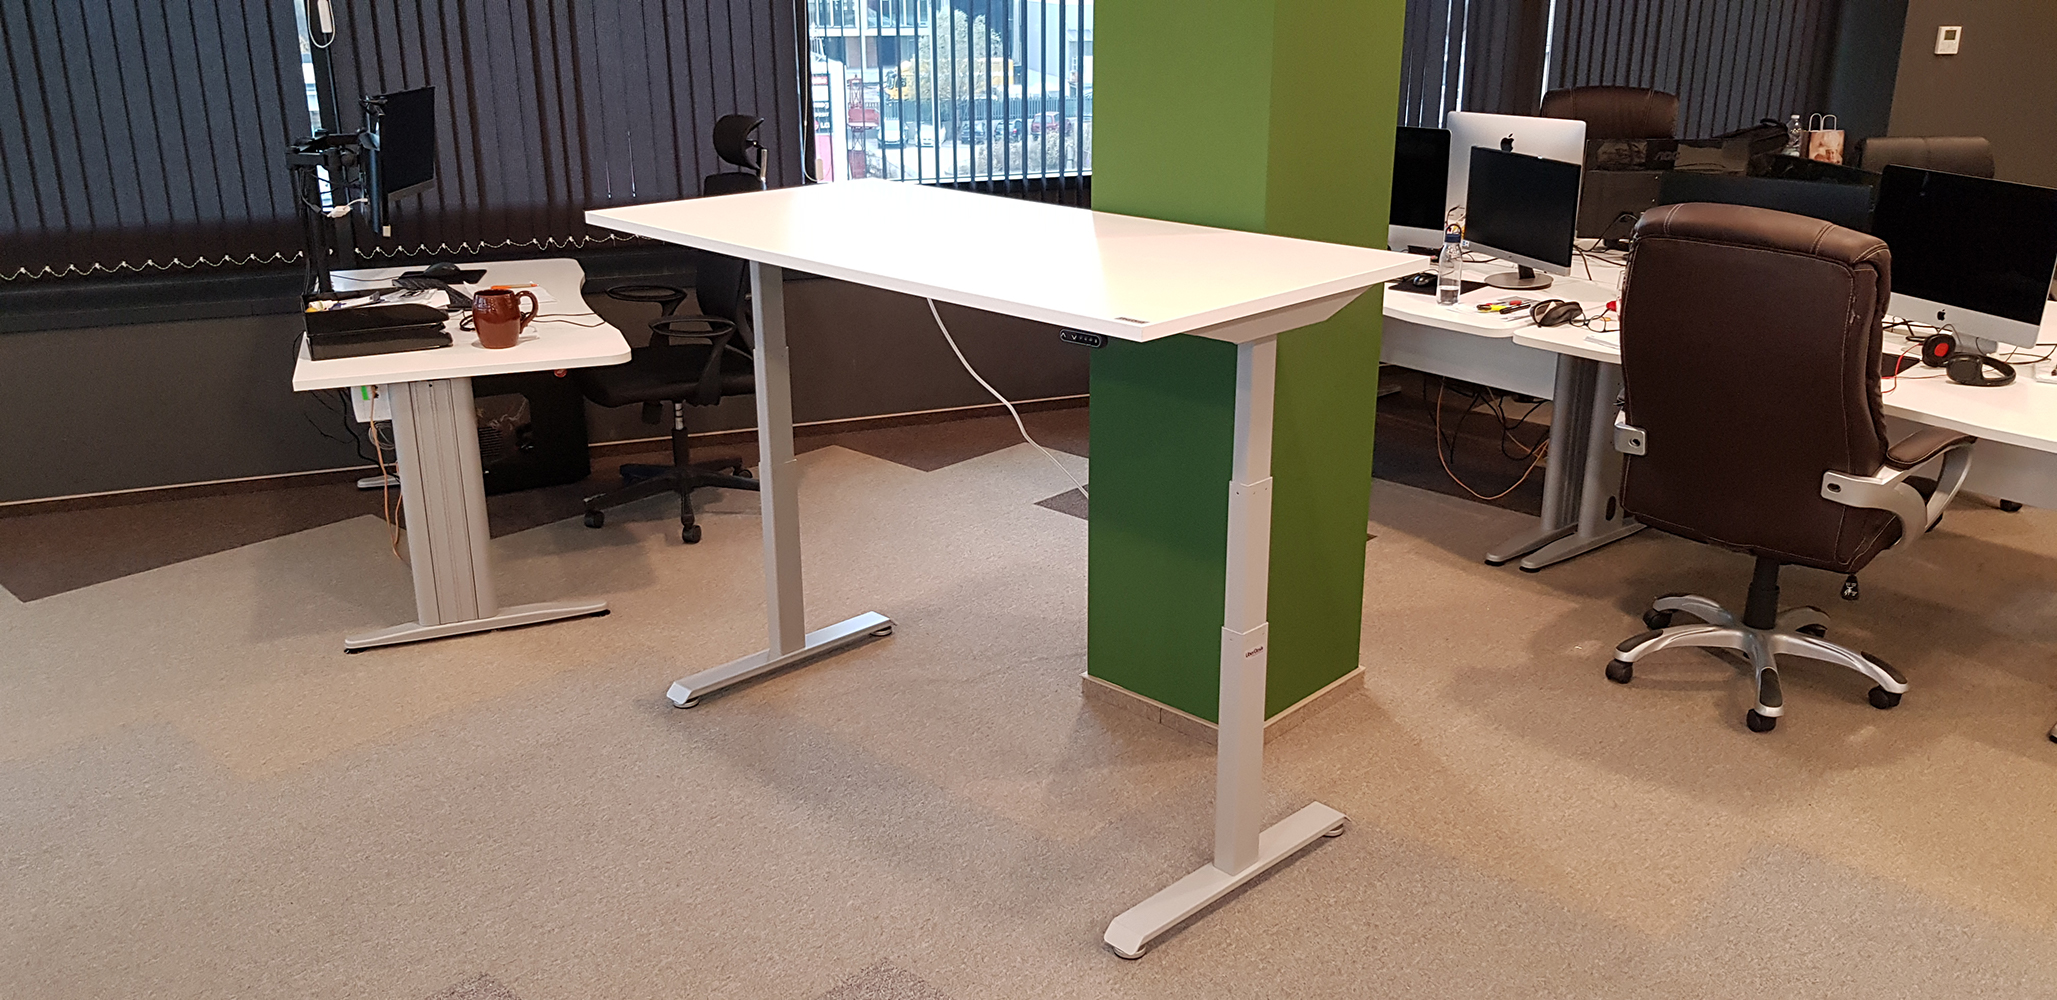 Standing desk BulDesk Pro with Grey base and White worktop